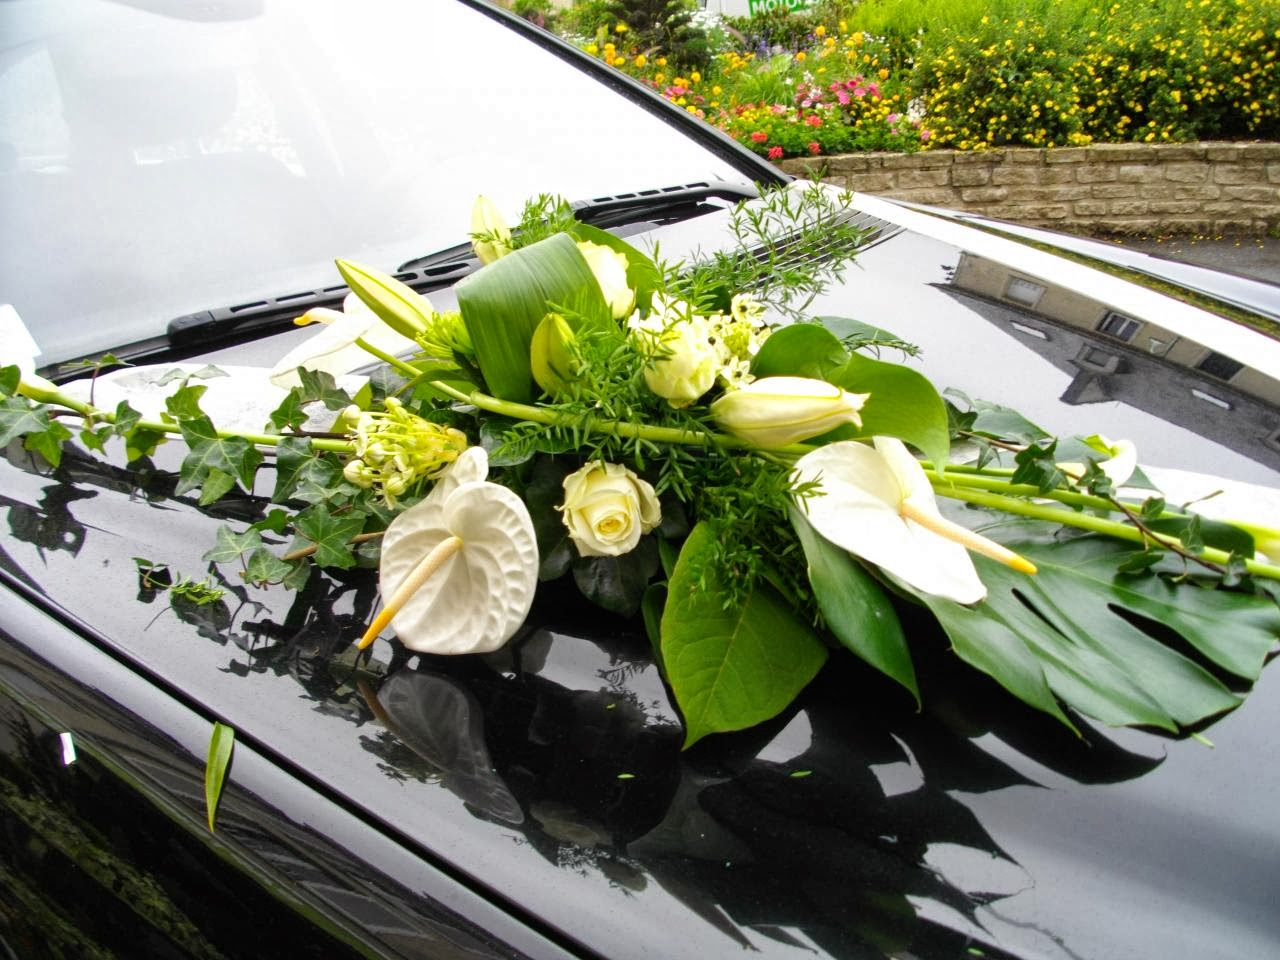 Wedding decorations car  nuray akkaya enurayakkaya on Pinterest